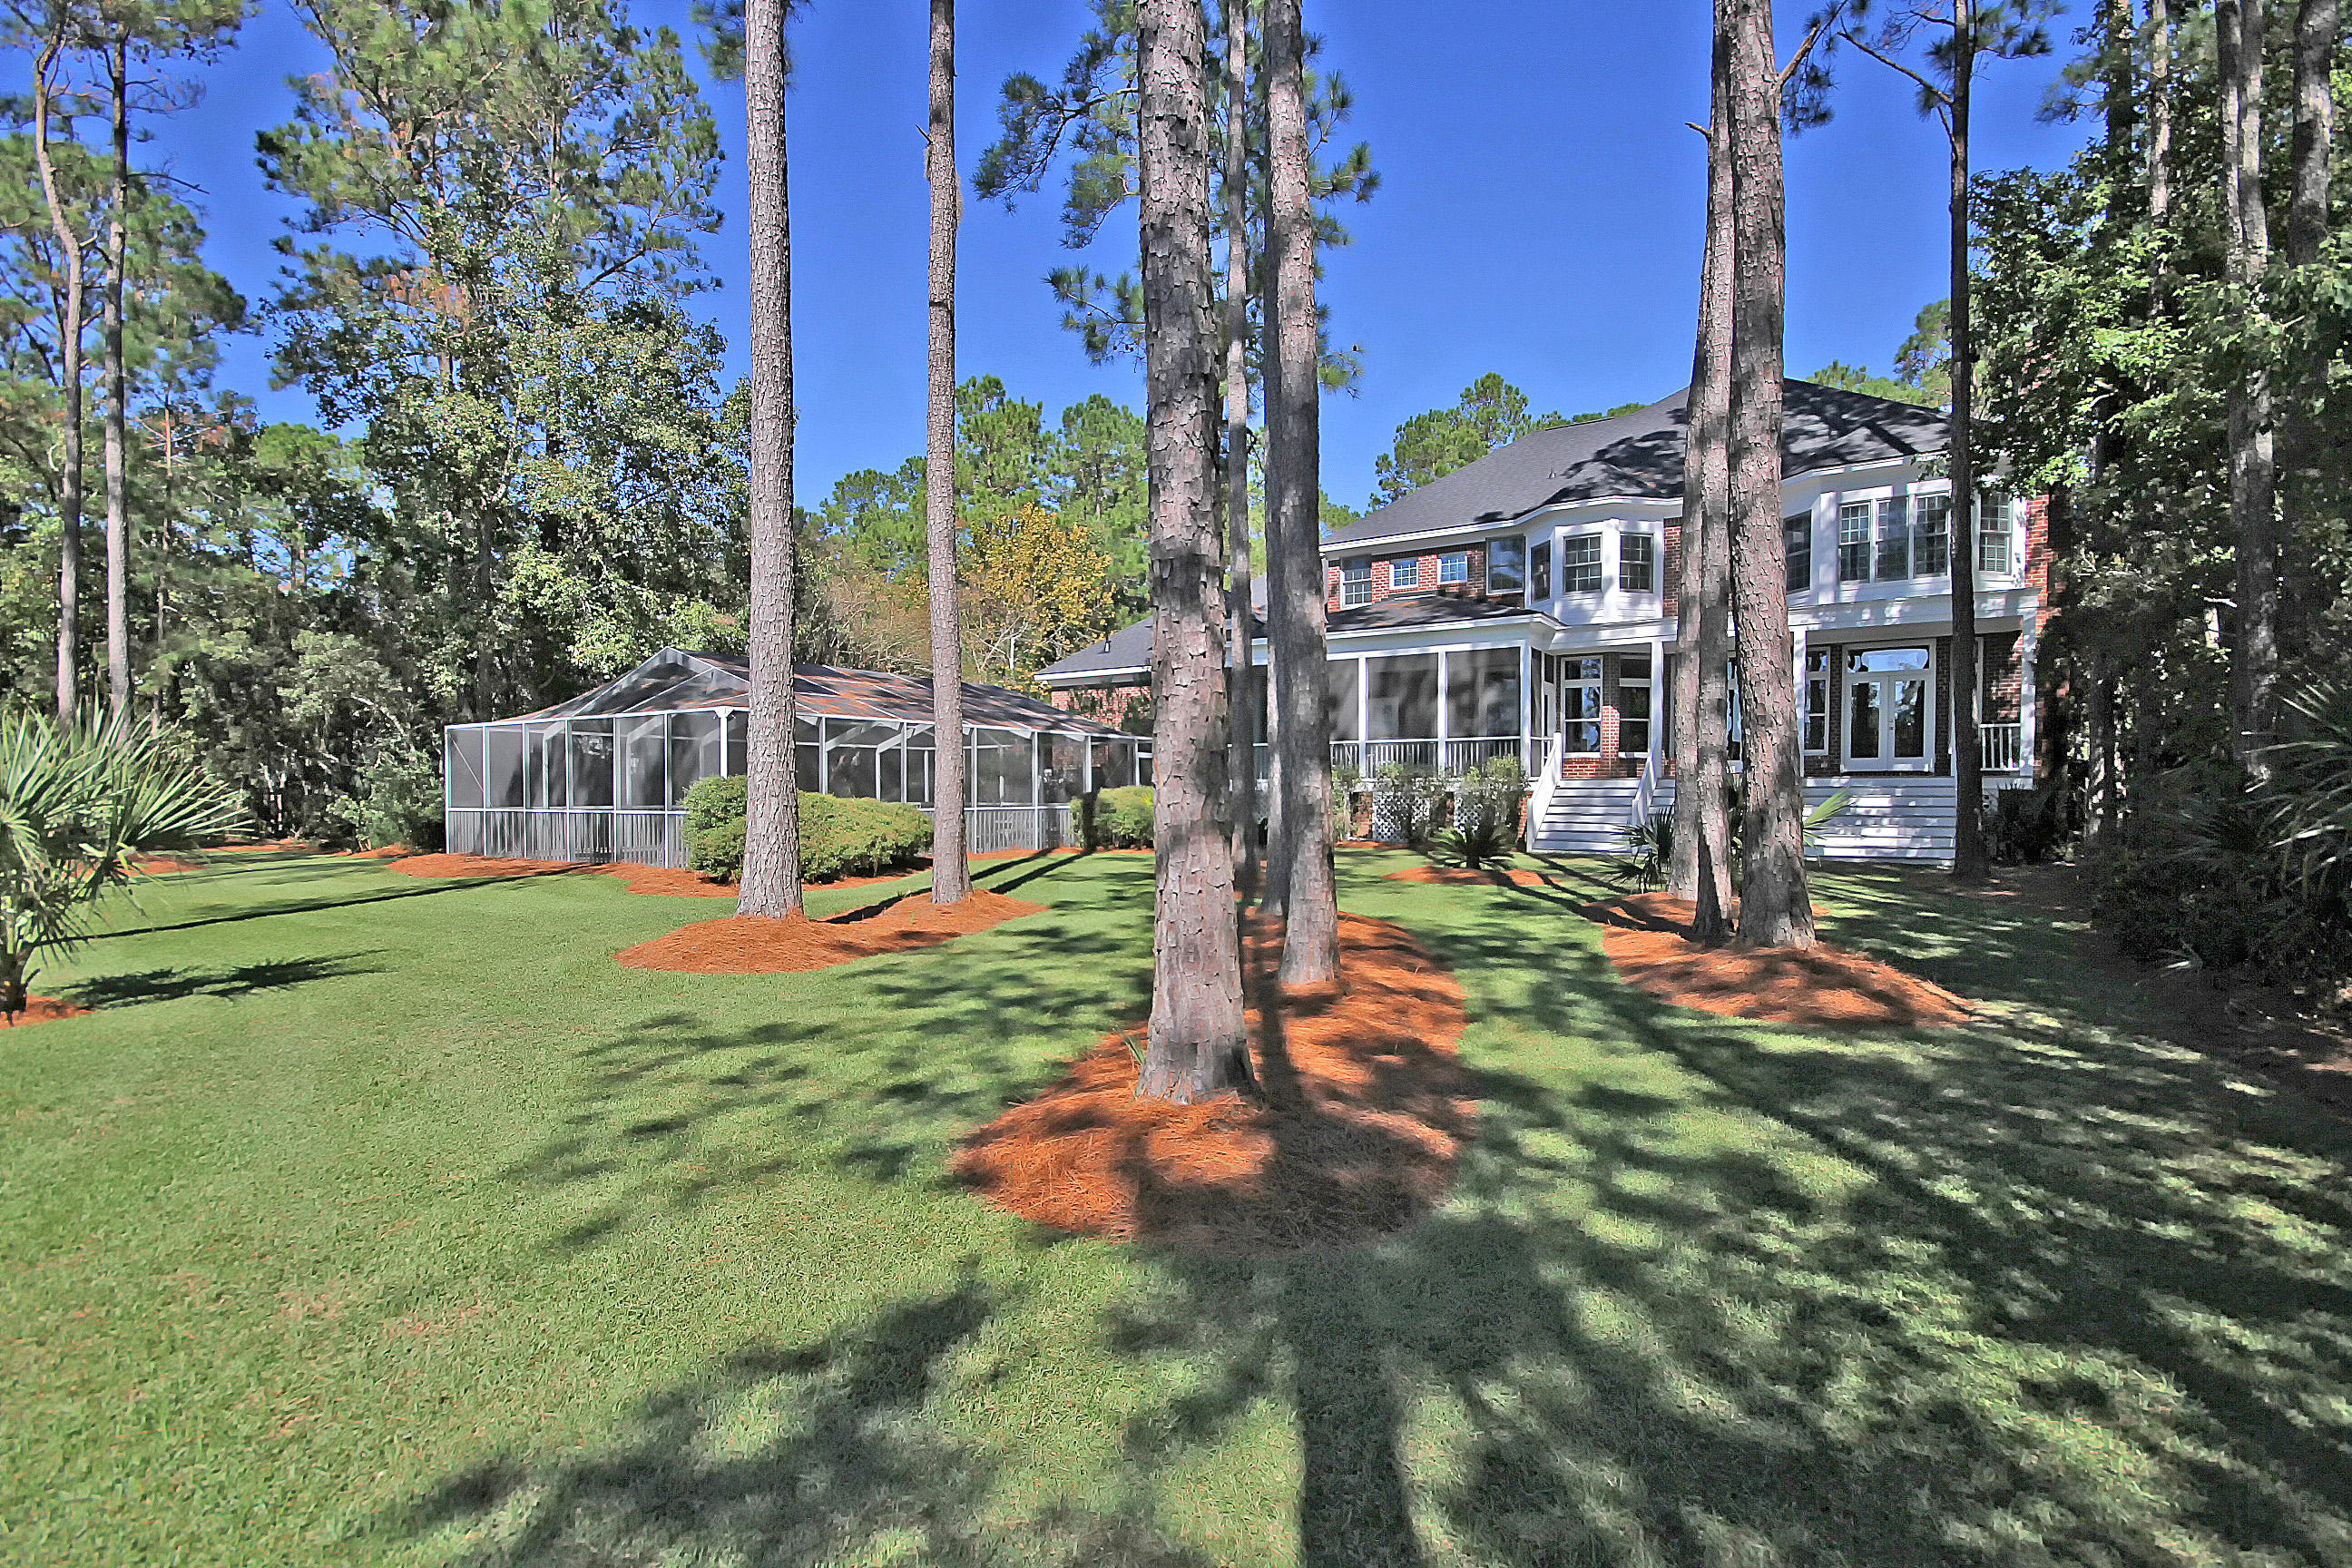 Home for sale 3140 Pignatelli Crescent, Dunes West, Mt. Pleasant, SC